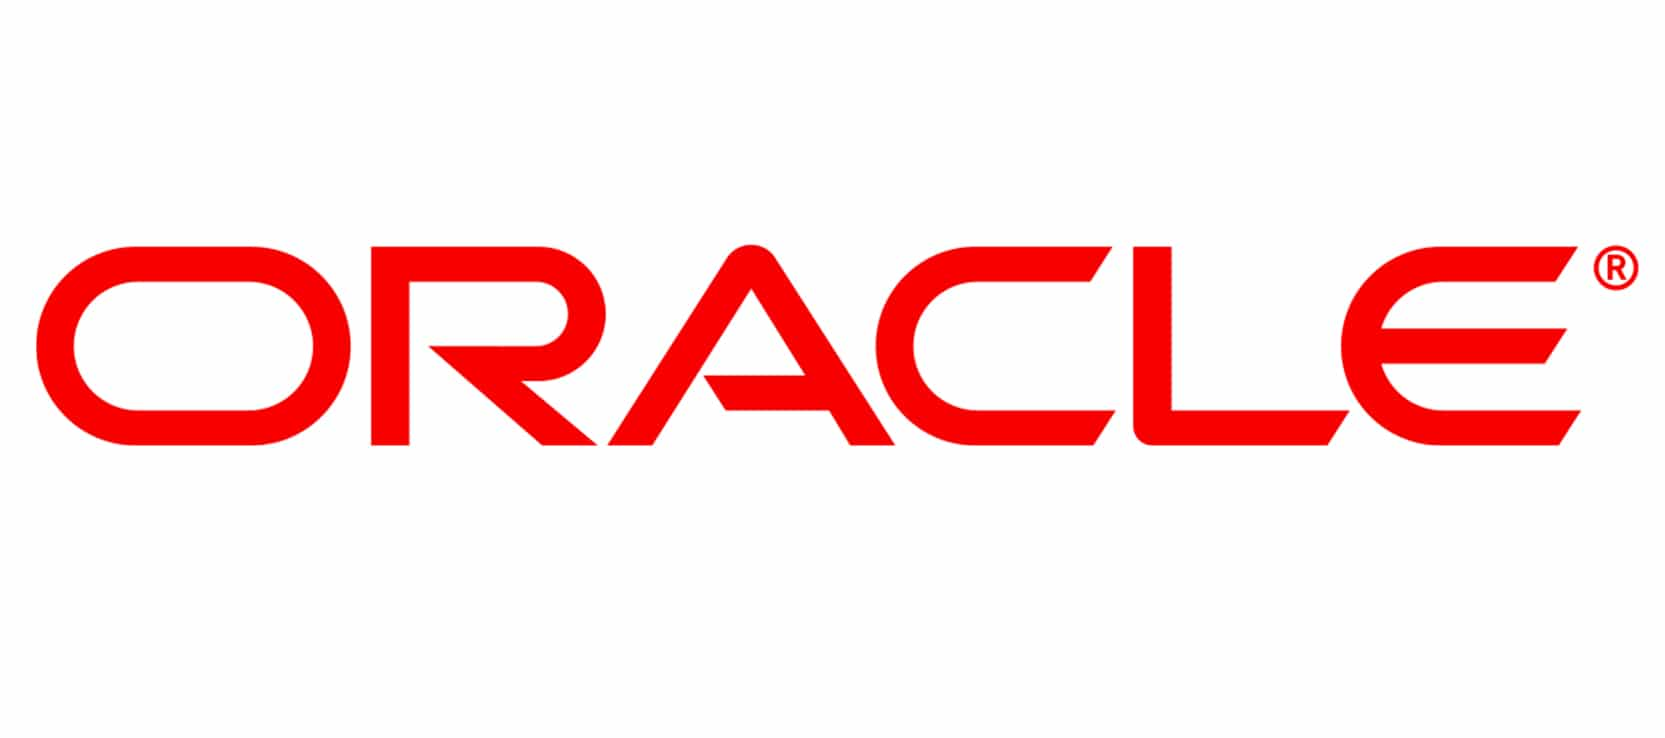 oracle : Brand Short Description Type Here.